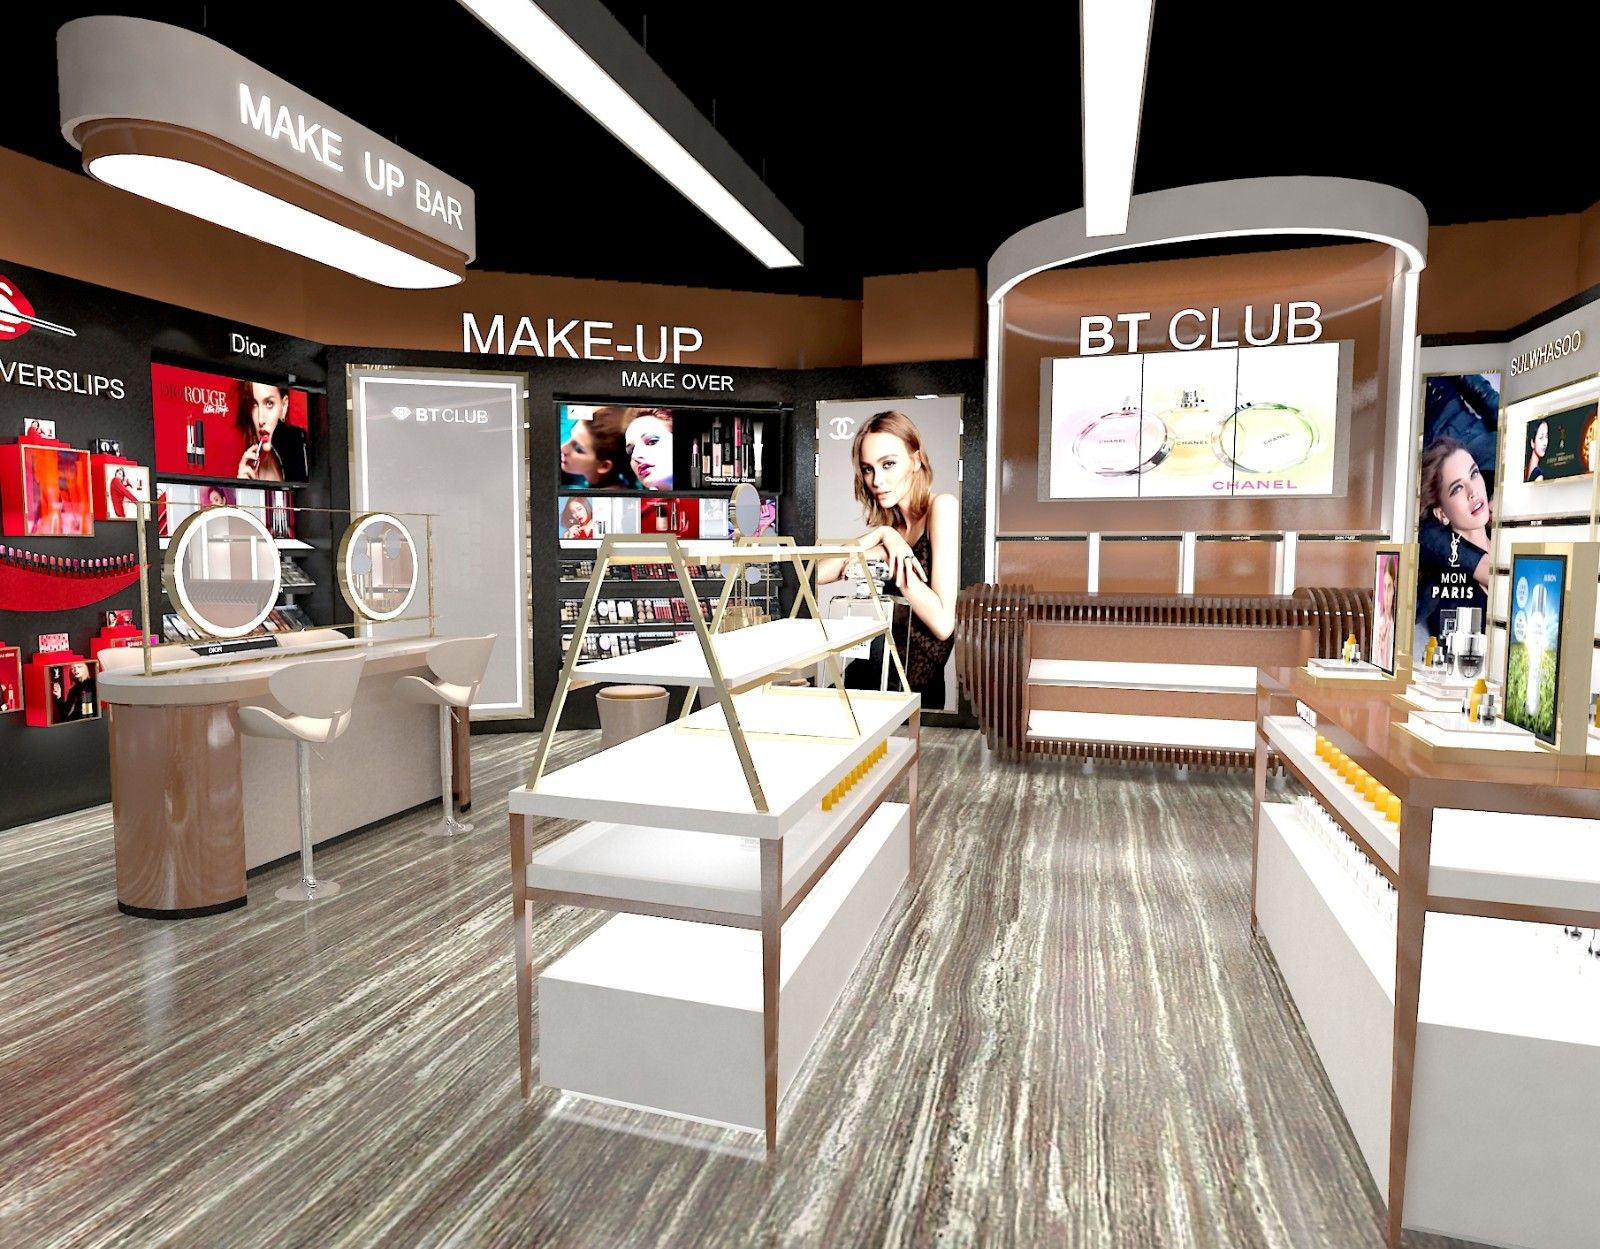 Bt Club Display Cabinet For Cosmetic Store In 2020 Cosmetic Store Display Cabinet Store Plan